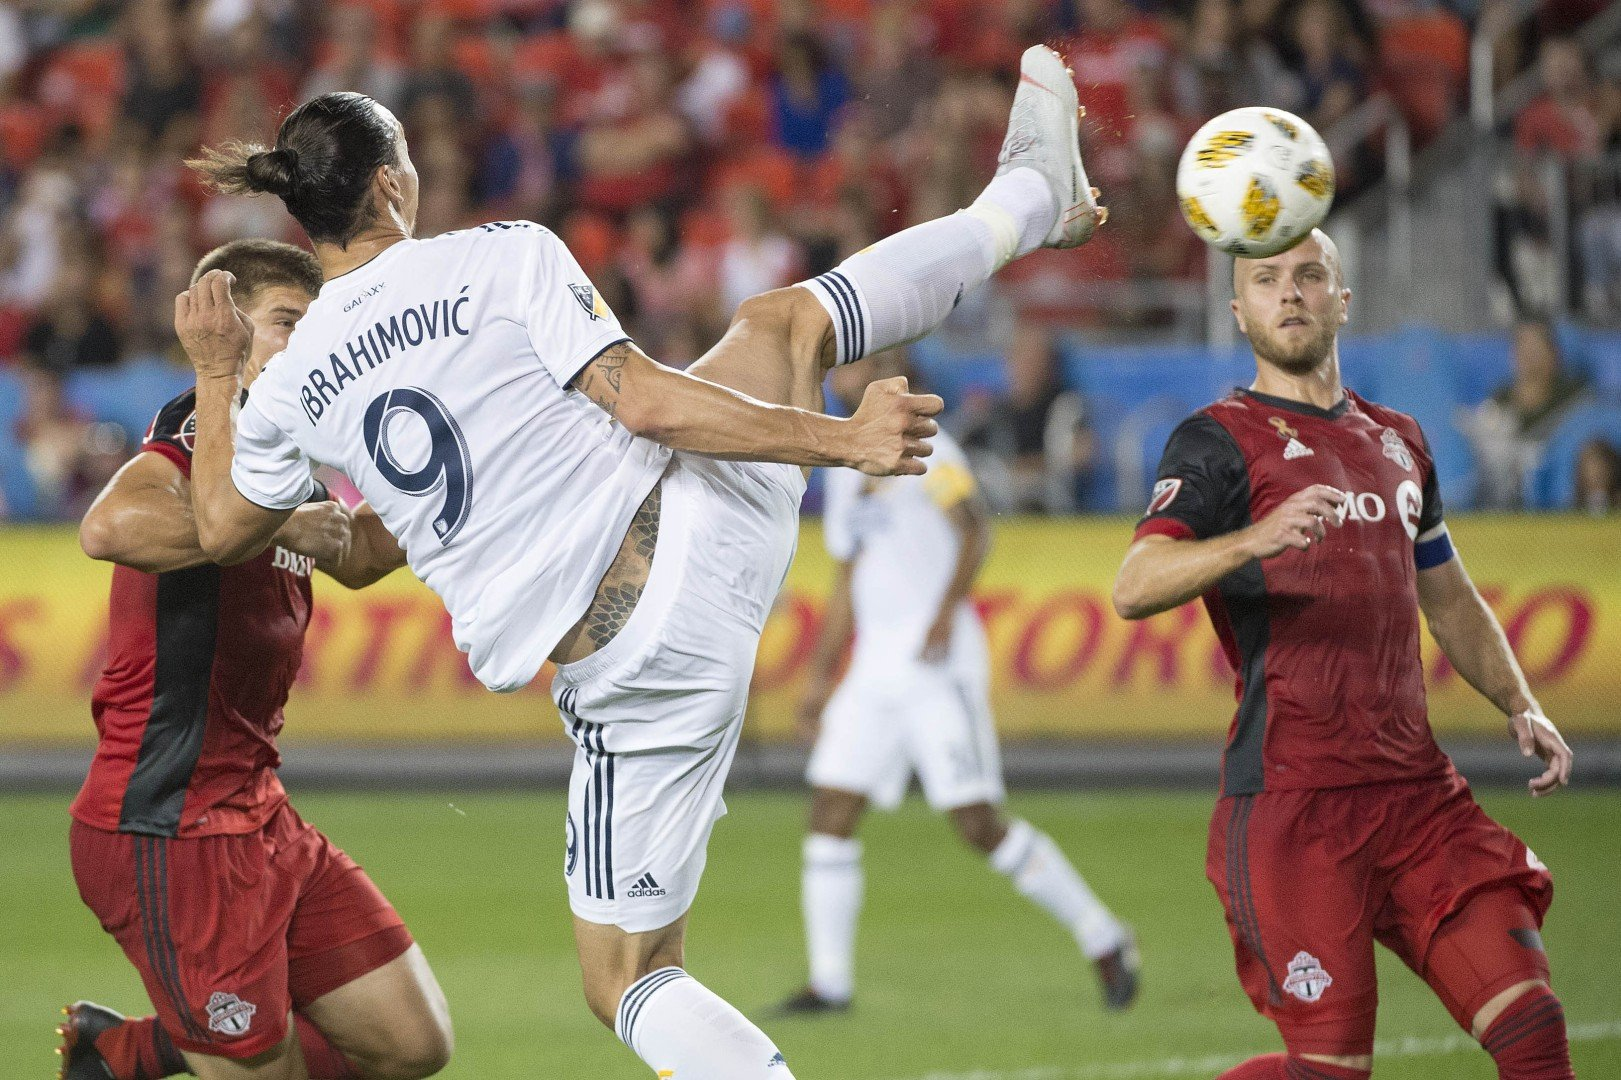 e35fd3bb1e4 Watch Zlatan Ibrahimovic's outrageous 500th career goal – 'So Shaolin  soccer wasn't just a movie?' | South China Morning Post